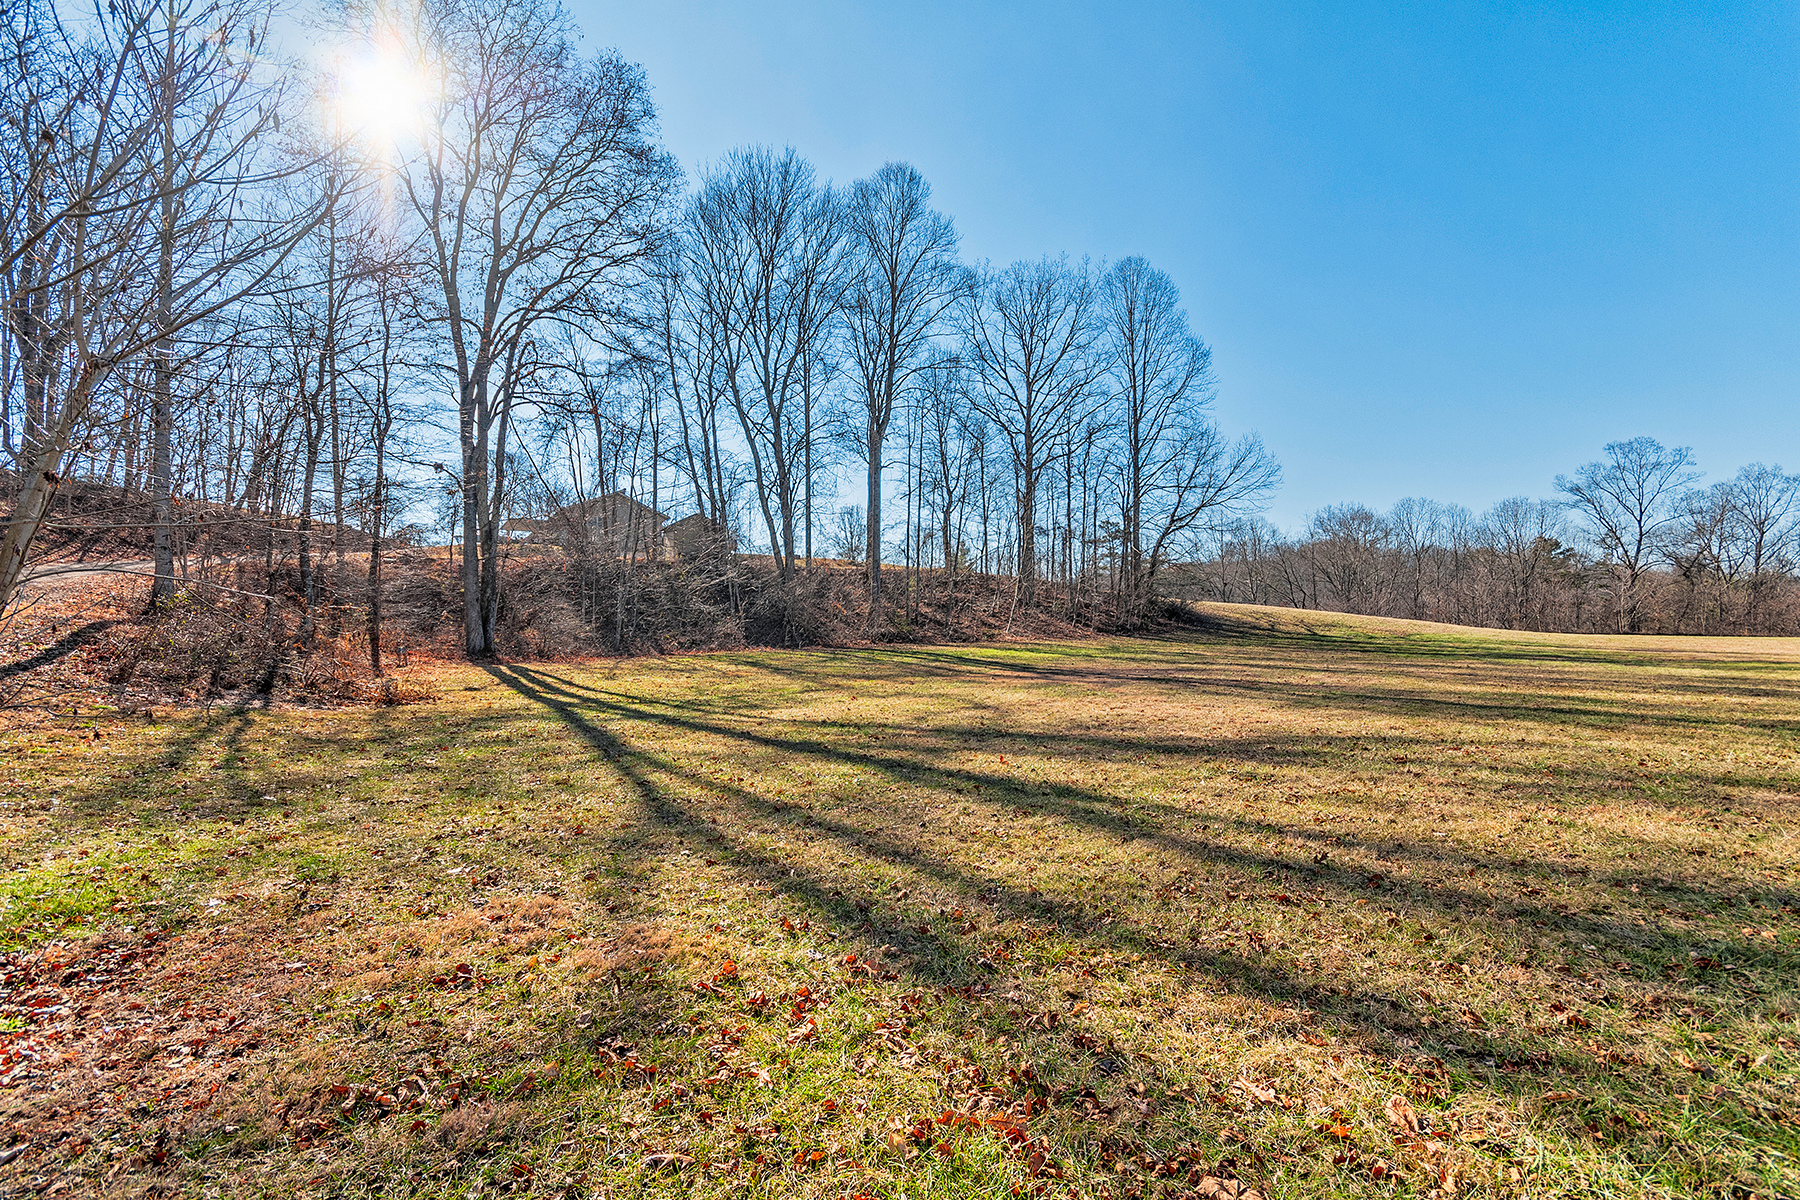 Additional photo for property listing at PRIVATE MINI FARM 320  Pisgah Hwy,  Candler, North Carolina 28715 United States